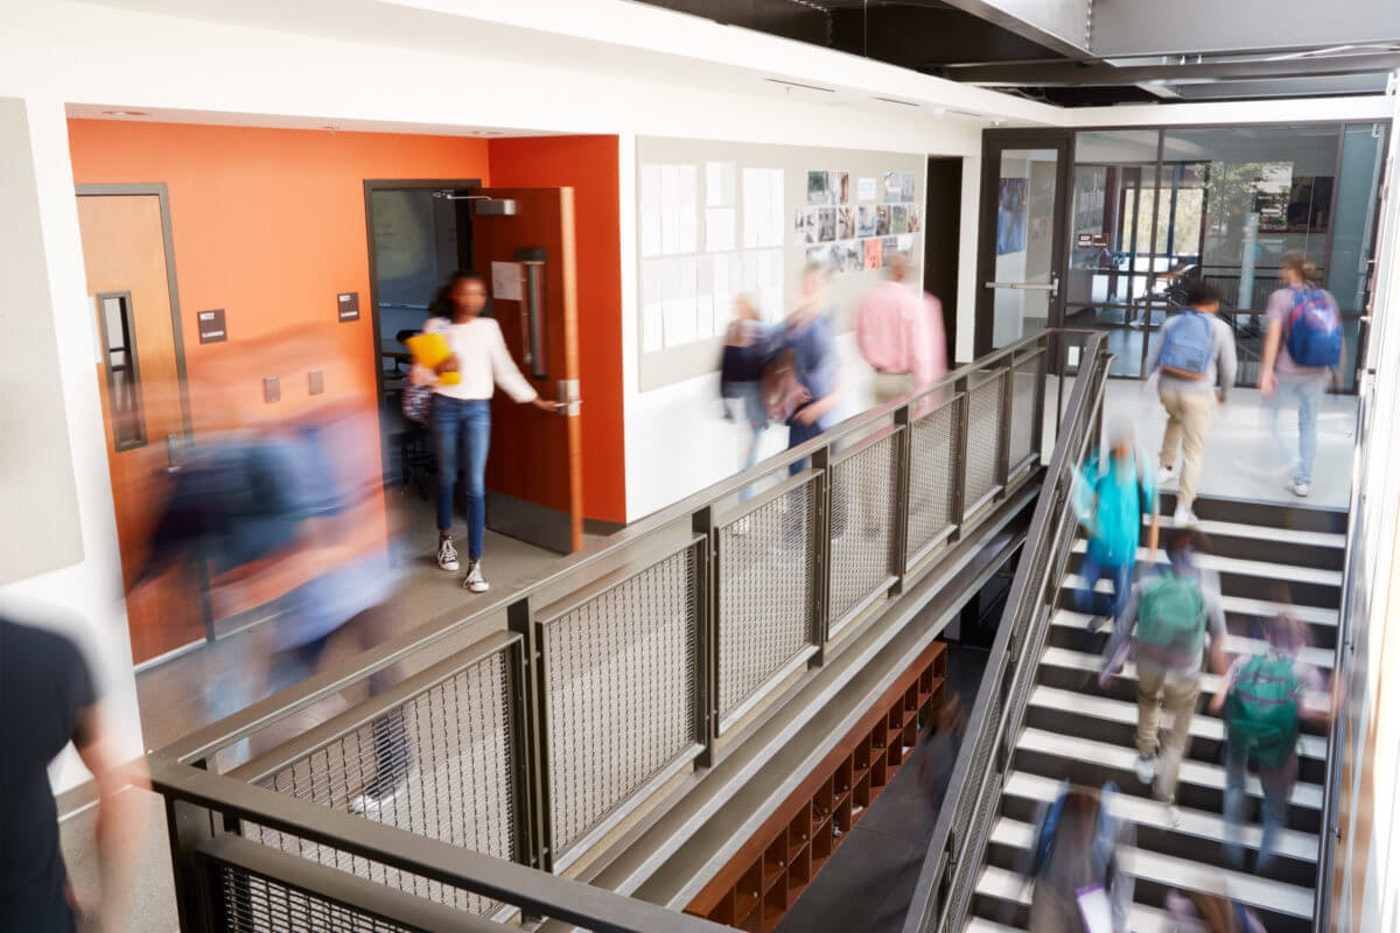 According to data from the US Department of Education, students with disabilities and Black students are disproportionately subjected to restraints and seclusion in schools.